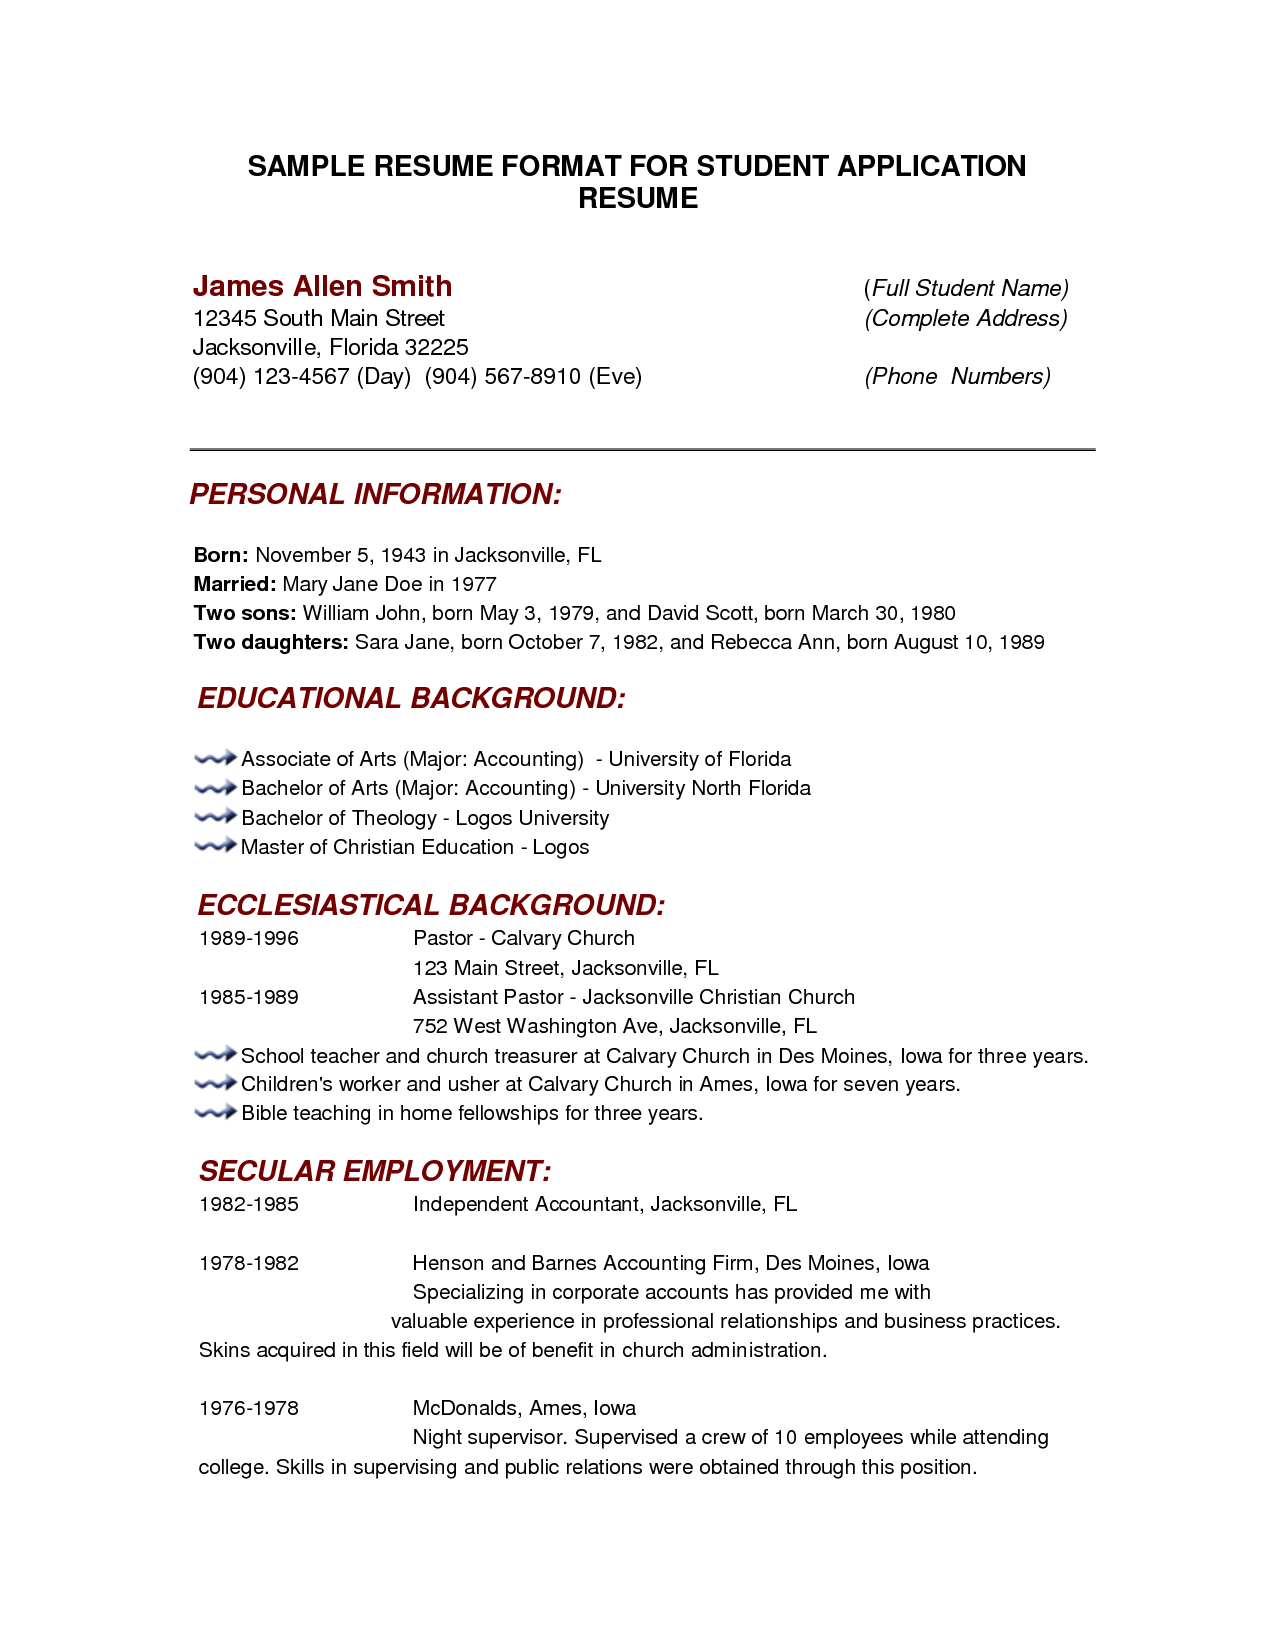 Student Resume Format Resume Template For College Students  Httpwwwresumecareer